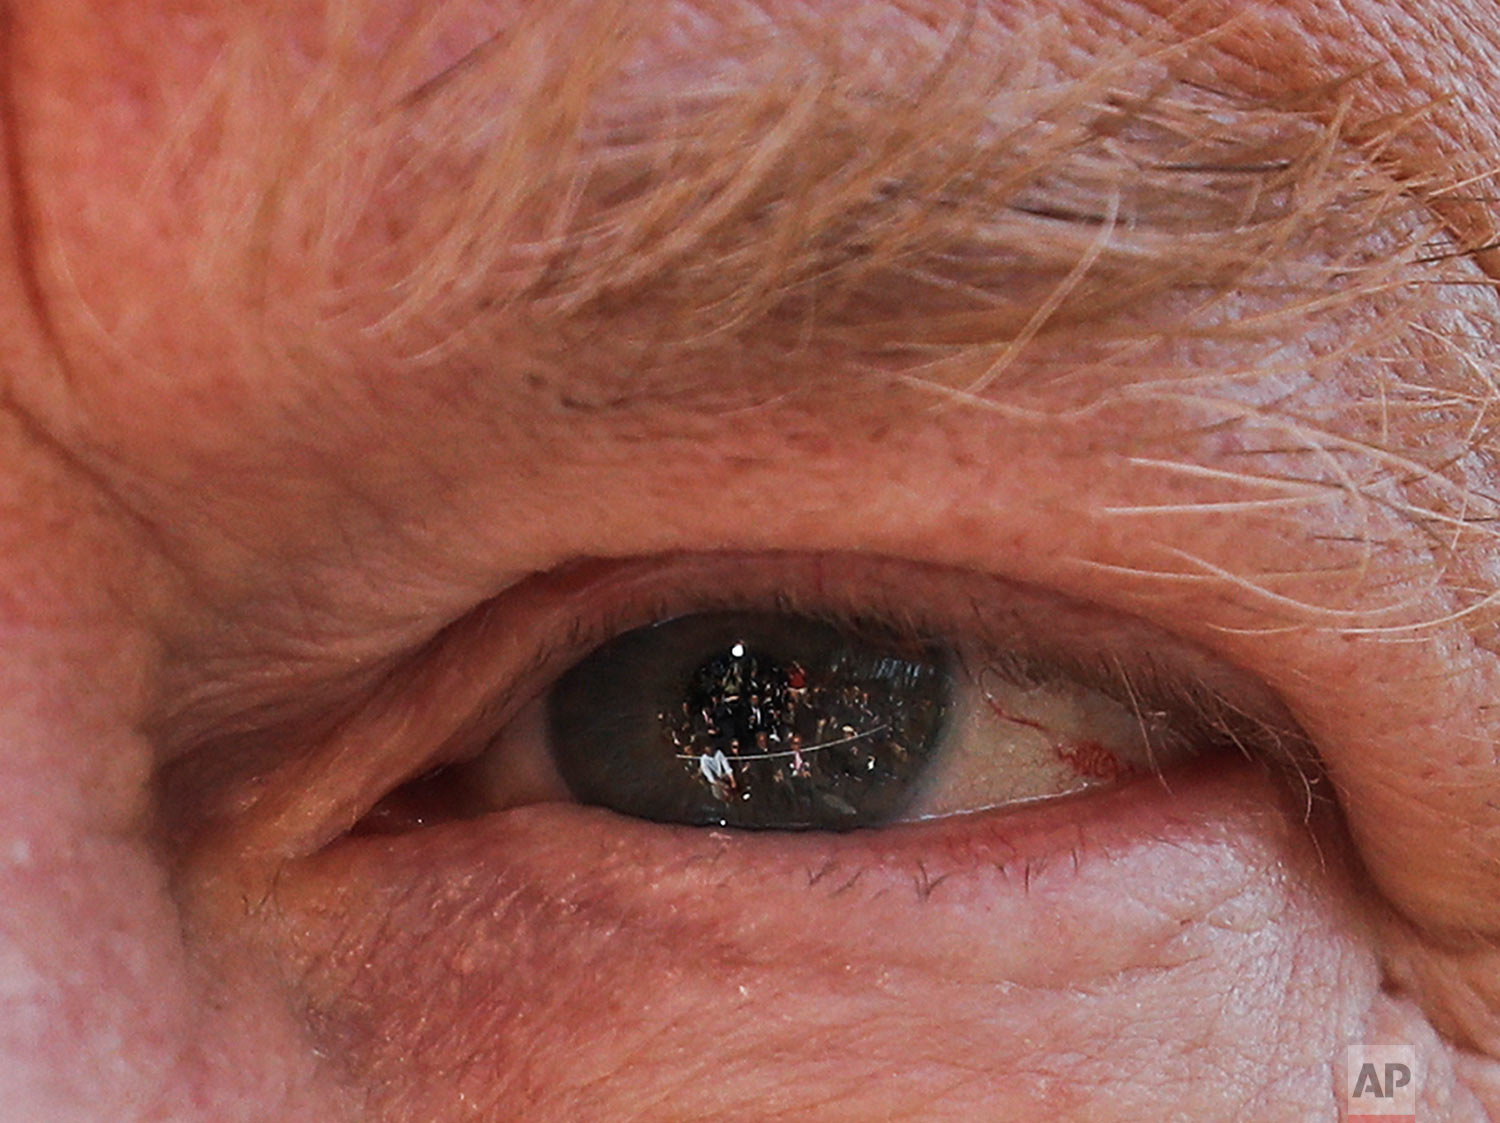 Members of the media are reflected in the eye of President Donald Trump as he answers questions on the South Lawn of the White House in Washington, before boarding Marine One helicopter April 10, 2019. (AP Photo/Pablo Martinez Monsivais)